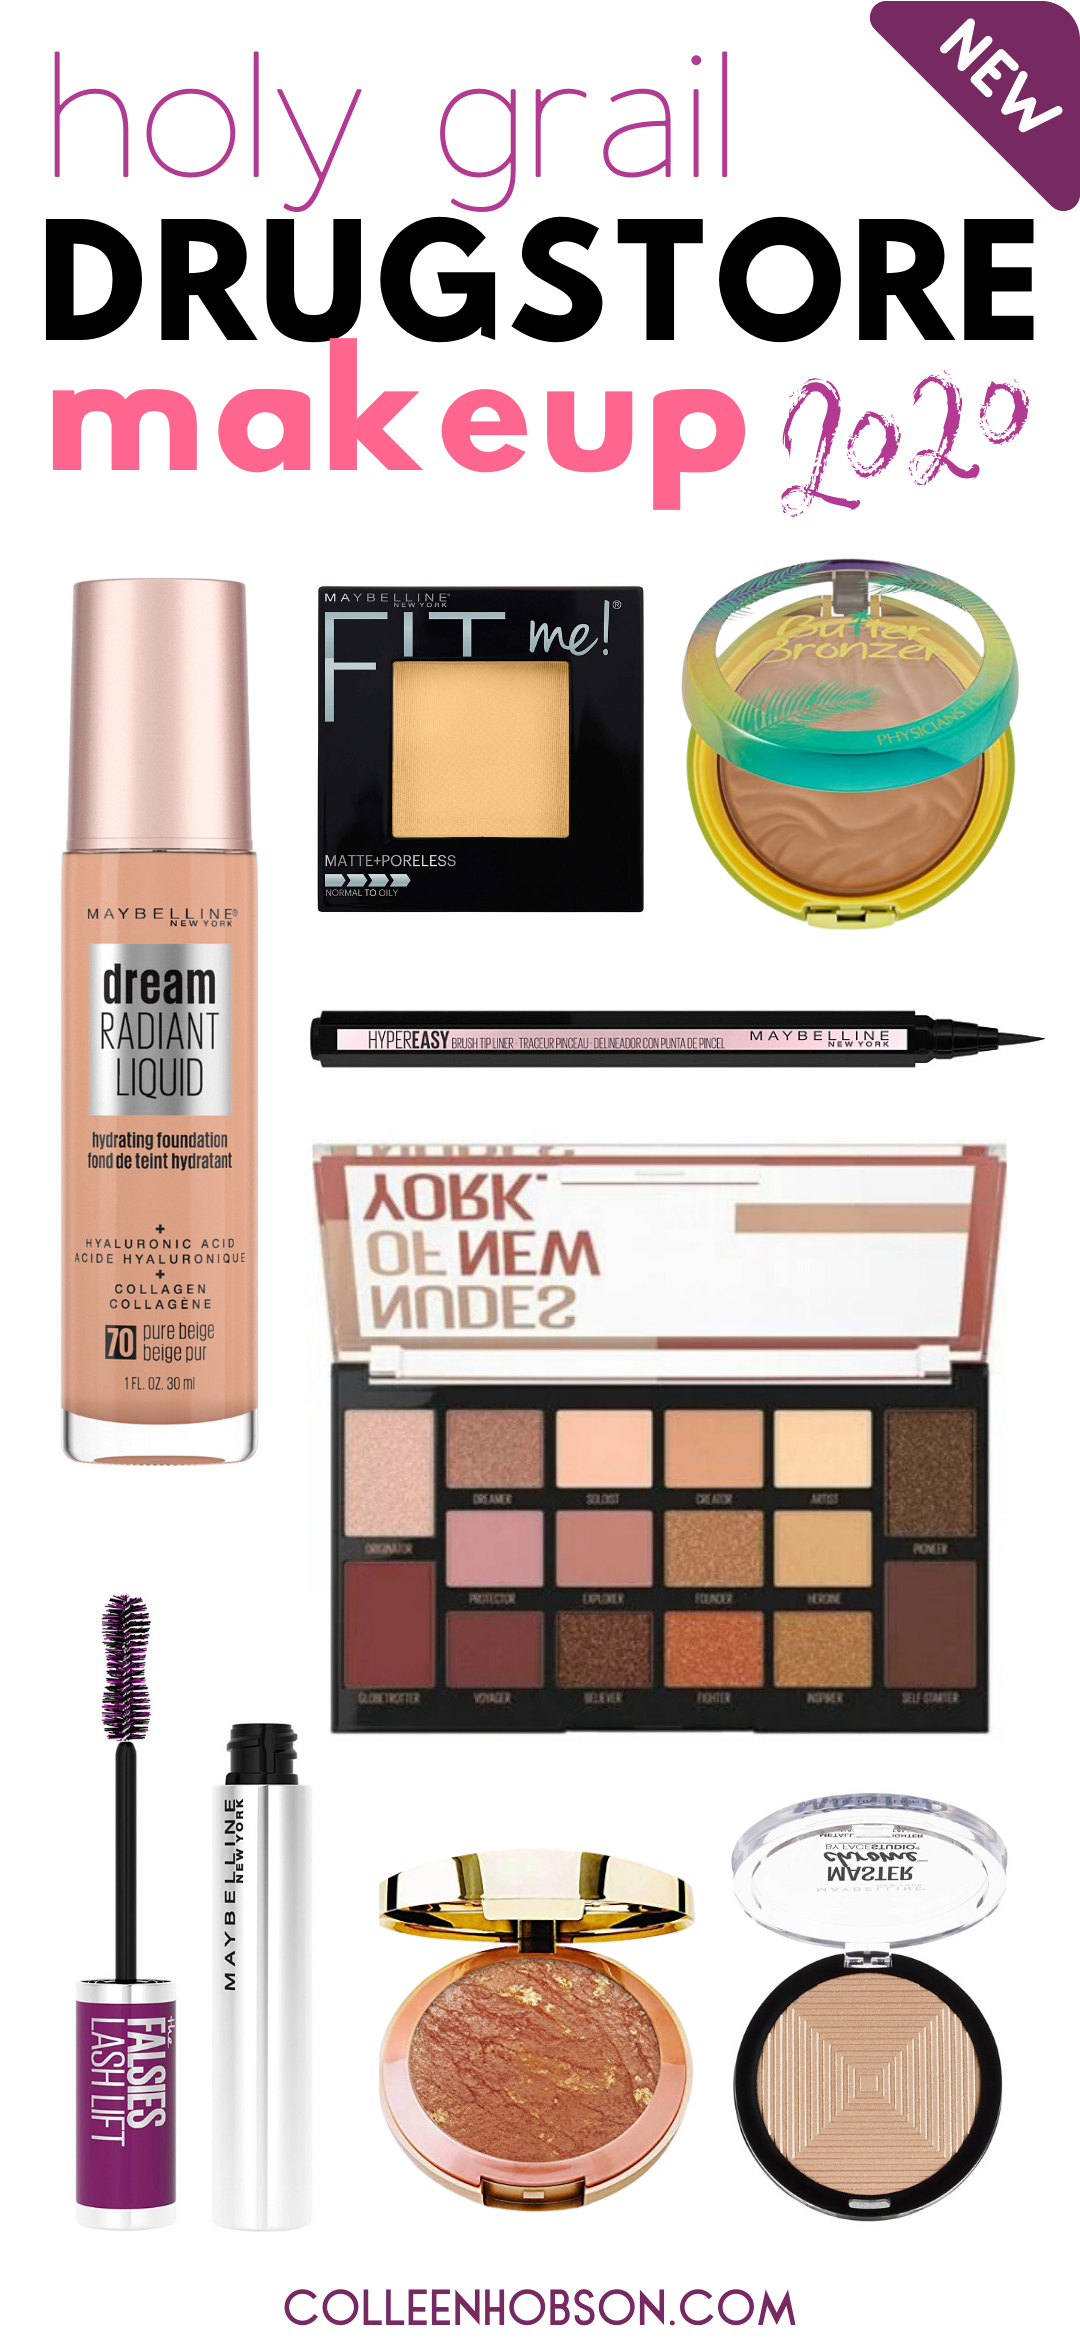 The Best Drugstore Makeup Products In 2020 In 2020 Best Drugstore Makeup Drugstore Makeup Beauty Products Drugstore